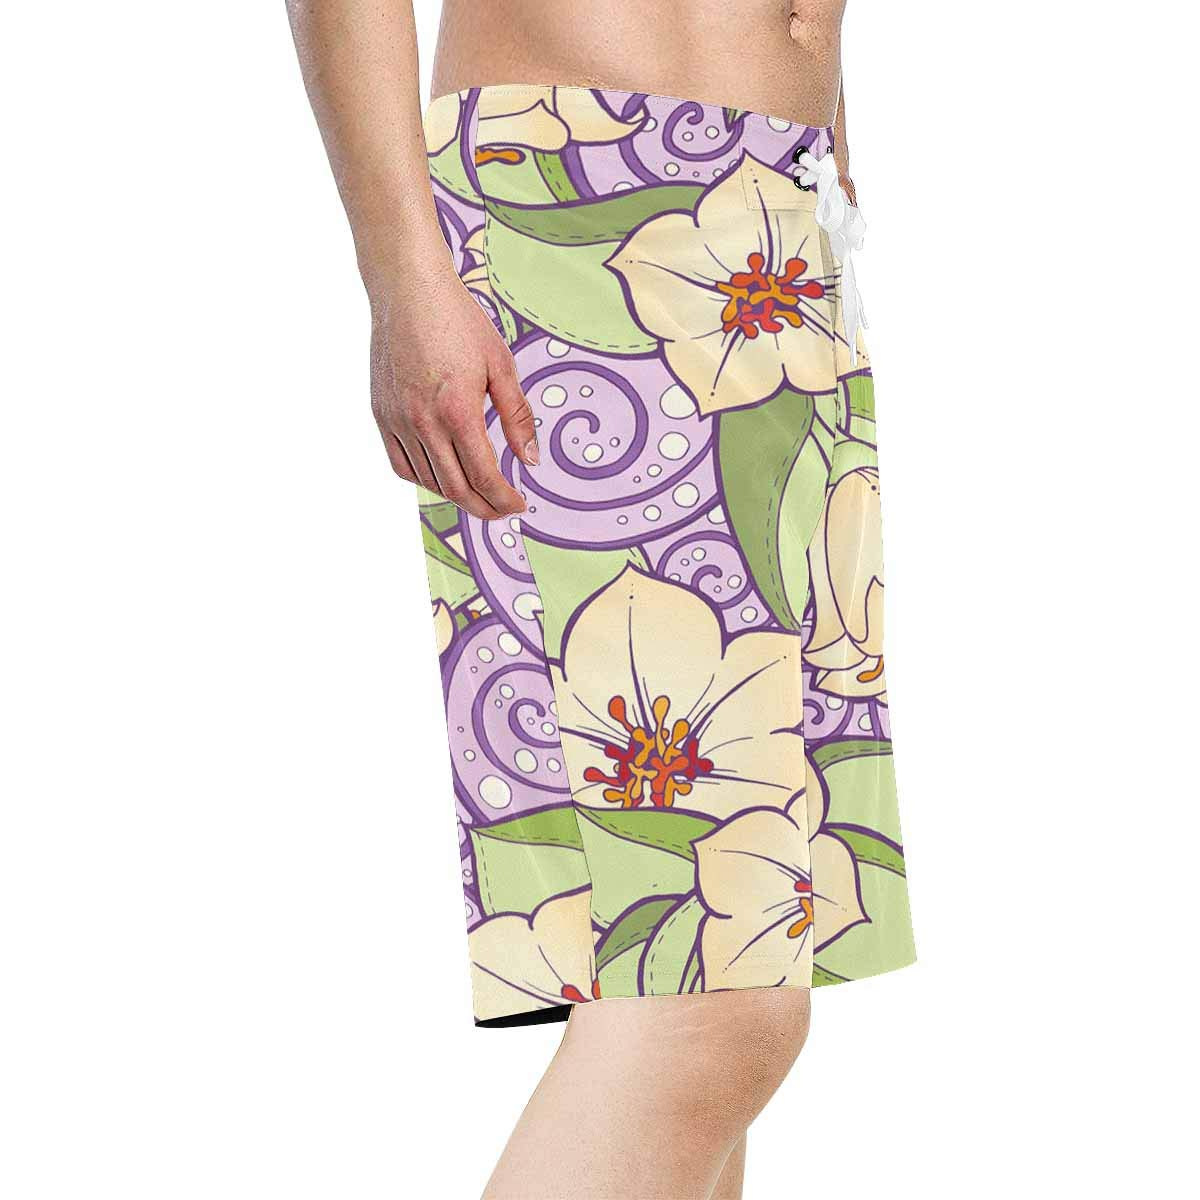 XS-6XL INTERESTPRINT Mens Beach Shorts Drawstring Stylized Flowers Purple Quick Dry Swim Trunks